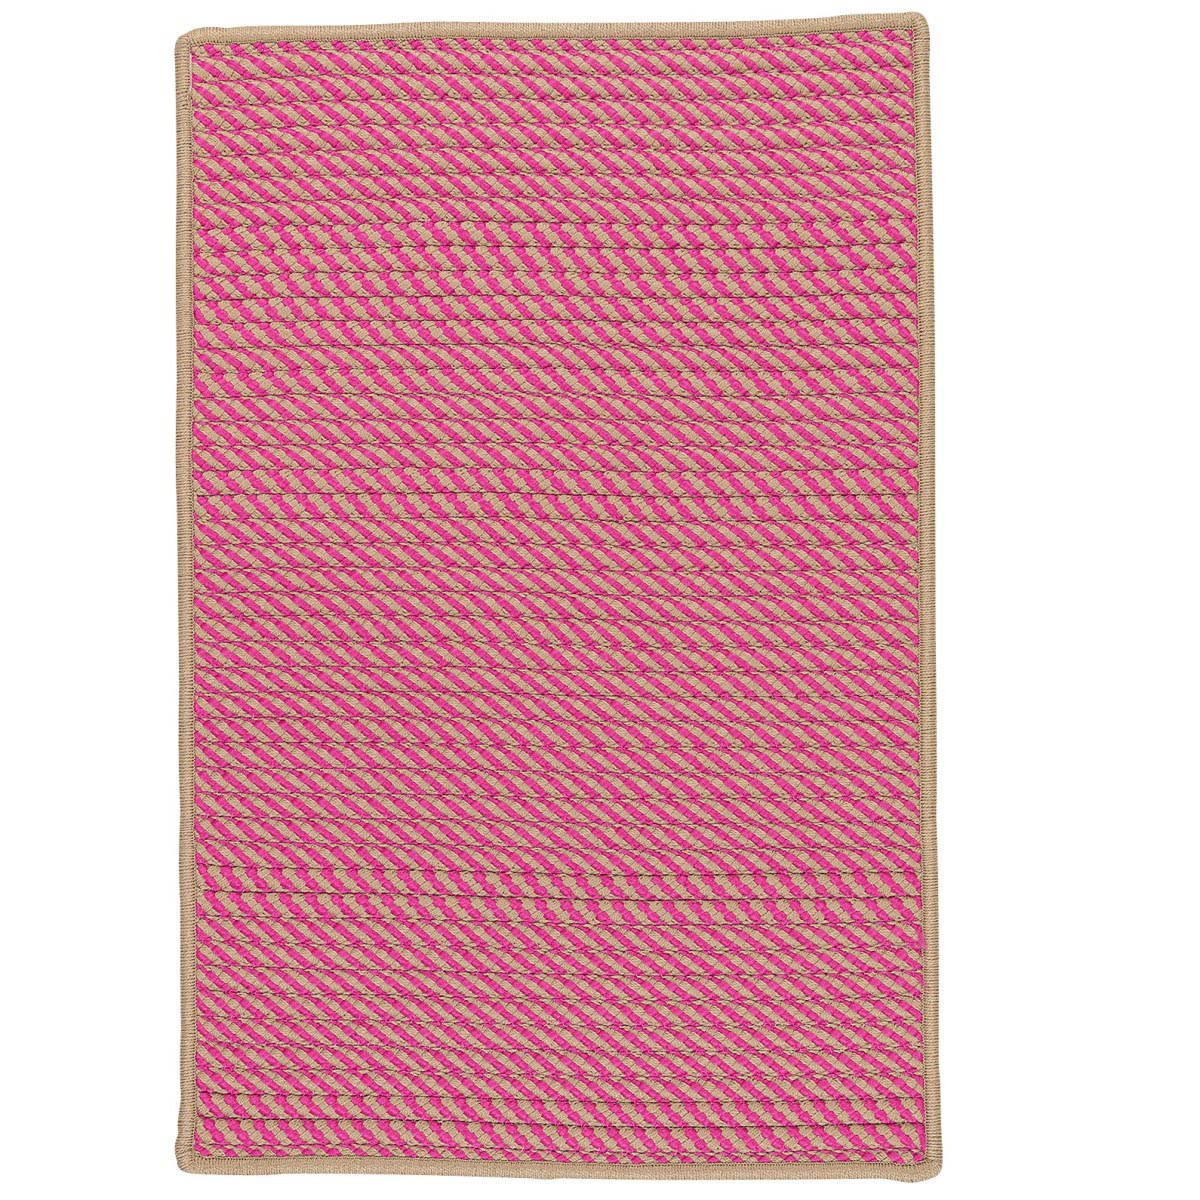 Point Prim Magenta Outdoor Braided Rectangular Rugs